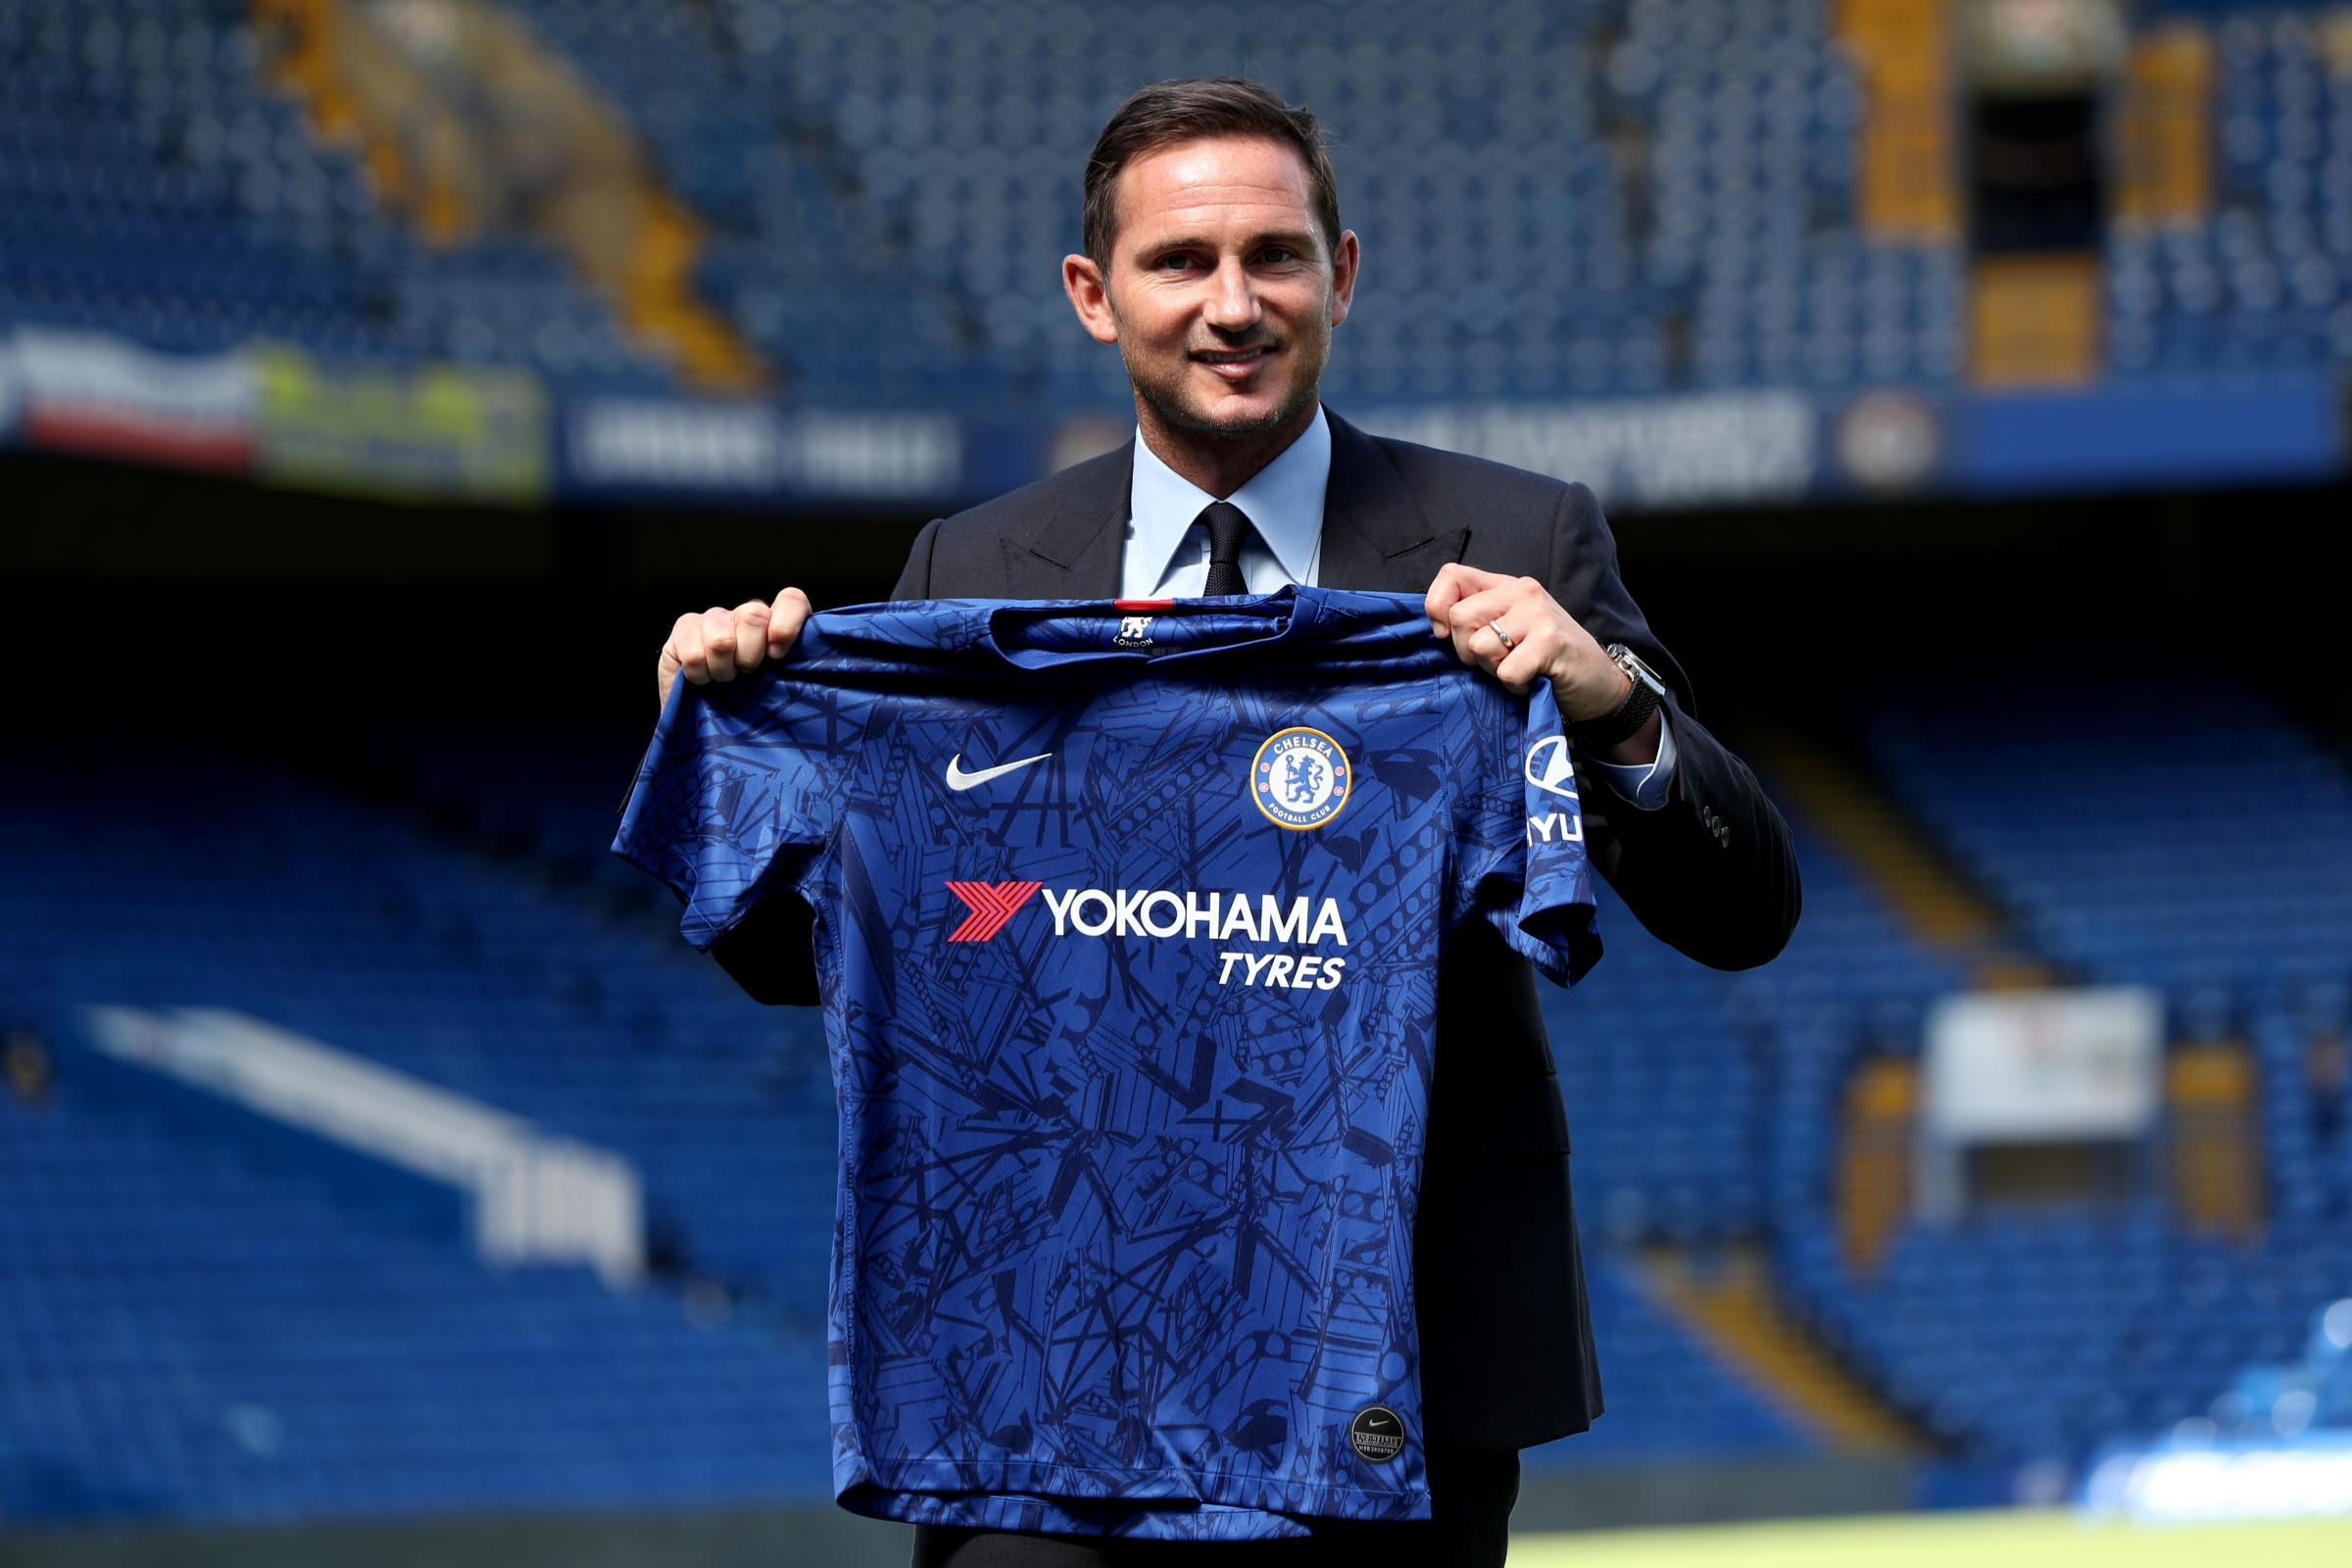 Frank Lampard Plays Down Trophy Laden Playing Career To Focus On Chelsea Job Carrick Herald